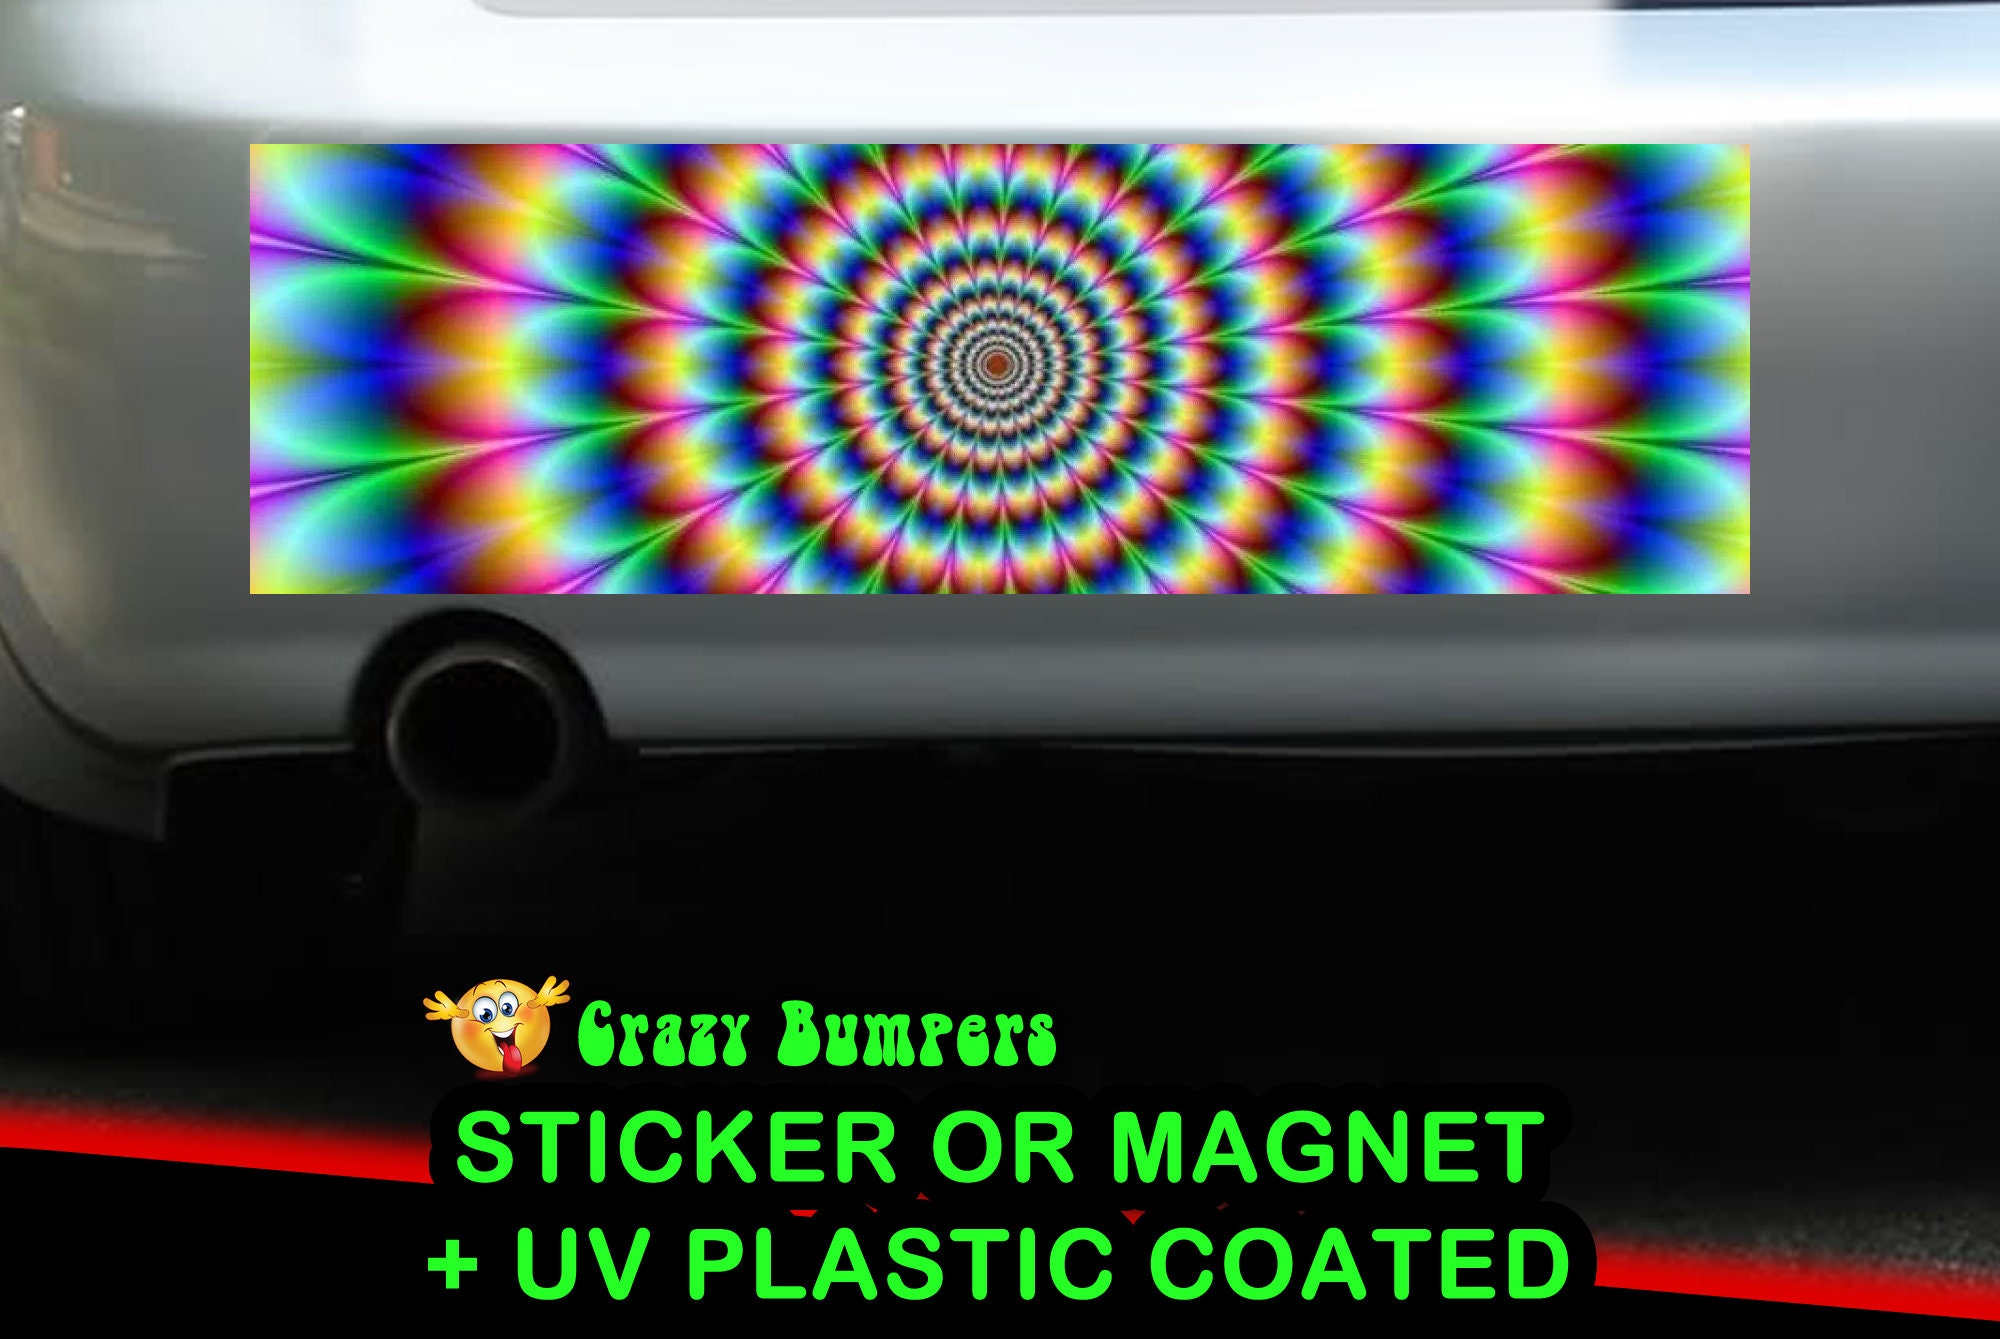 CAD$9.74 - Rainbow Circle Funky Bumper Sticker 10 x 3 UV Plastic Coated or Magnetic Bumper Sticker Available